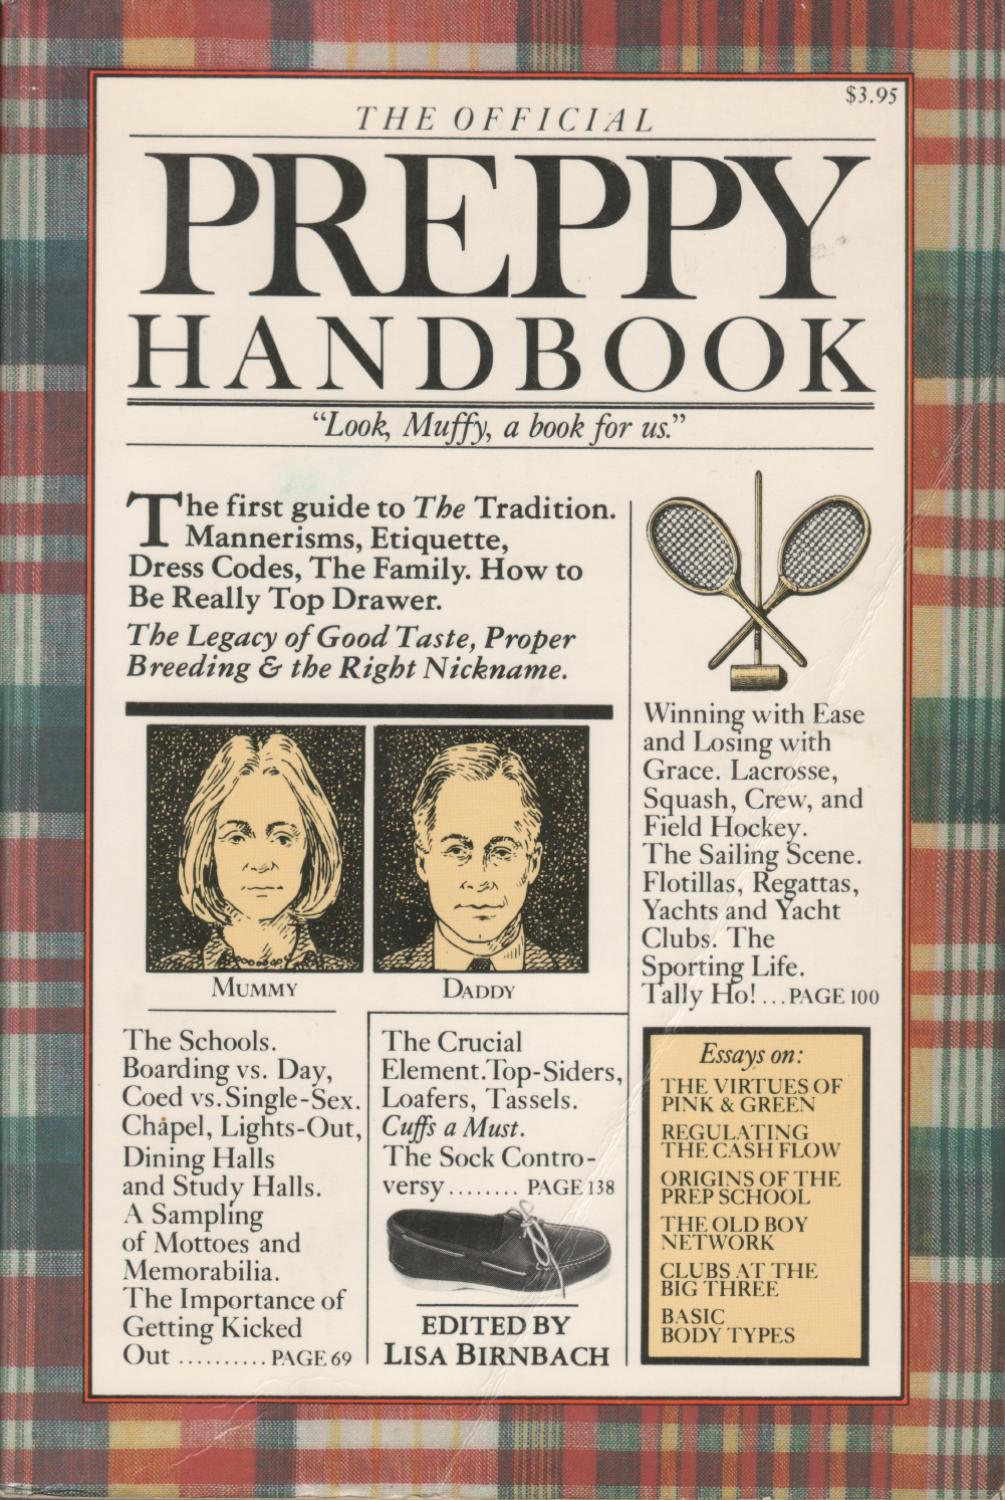 Image result for the official preppy handbook